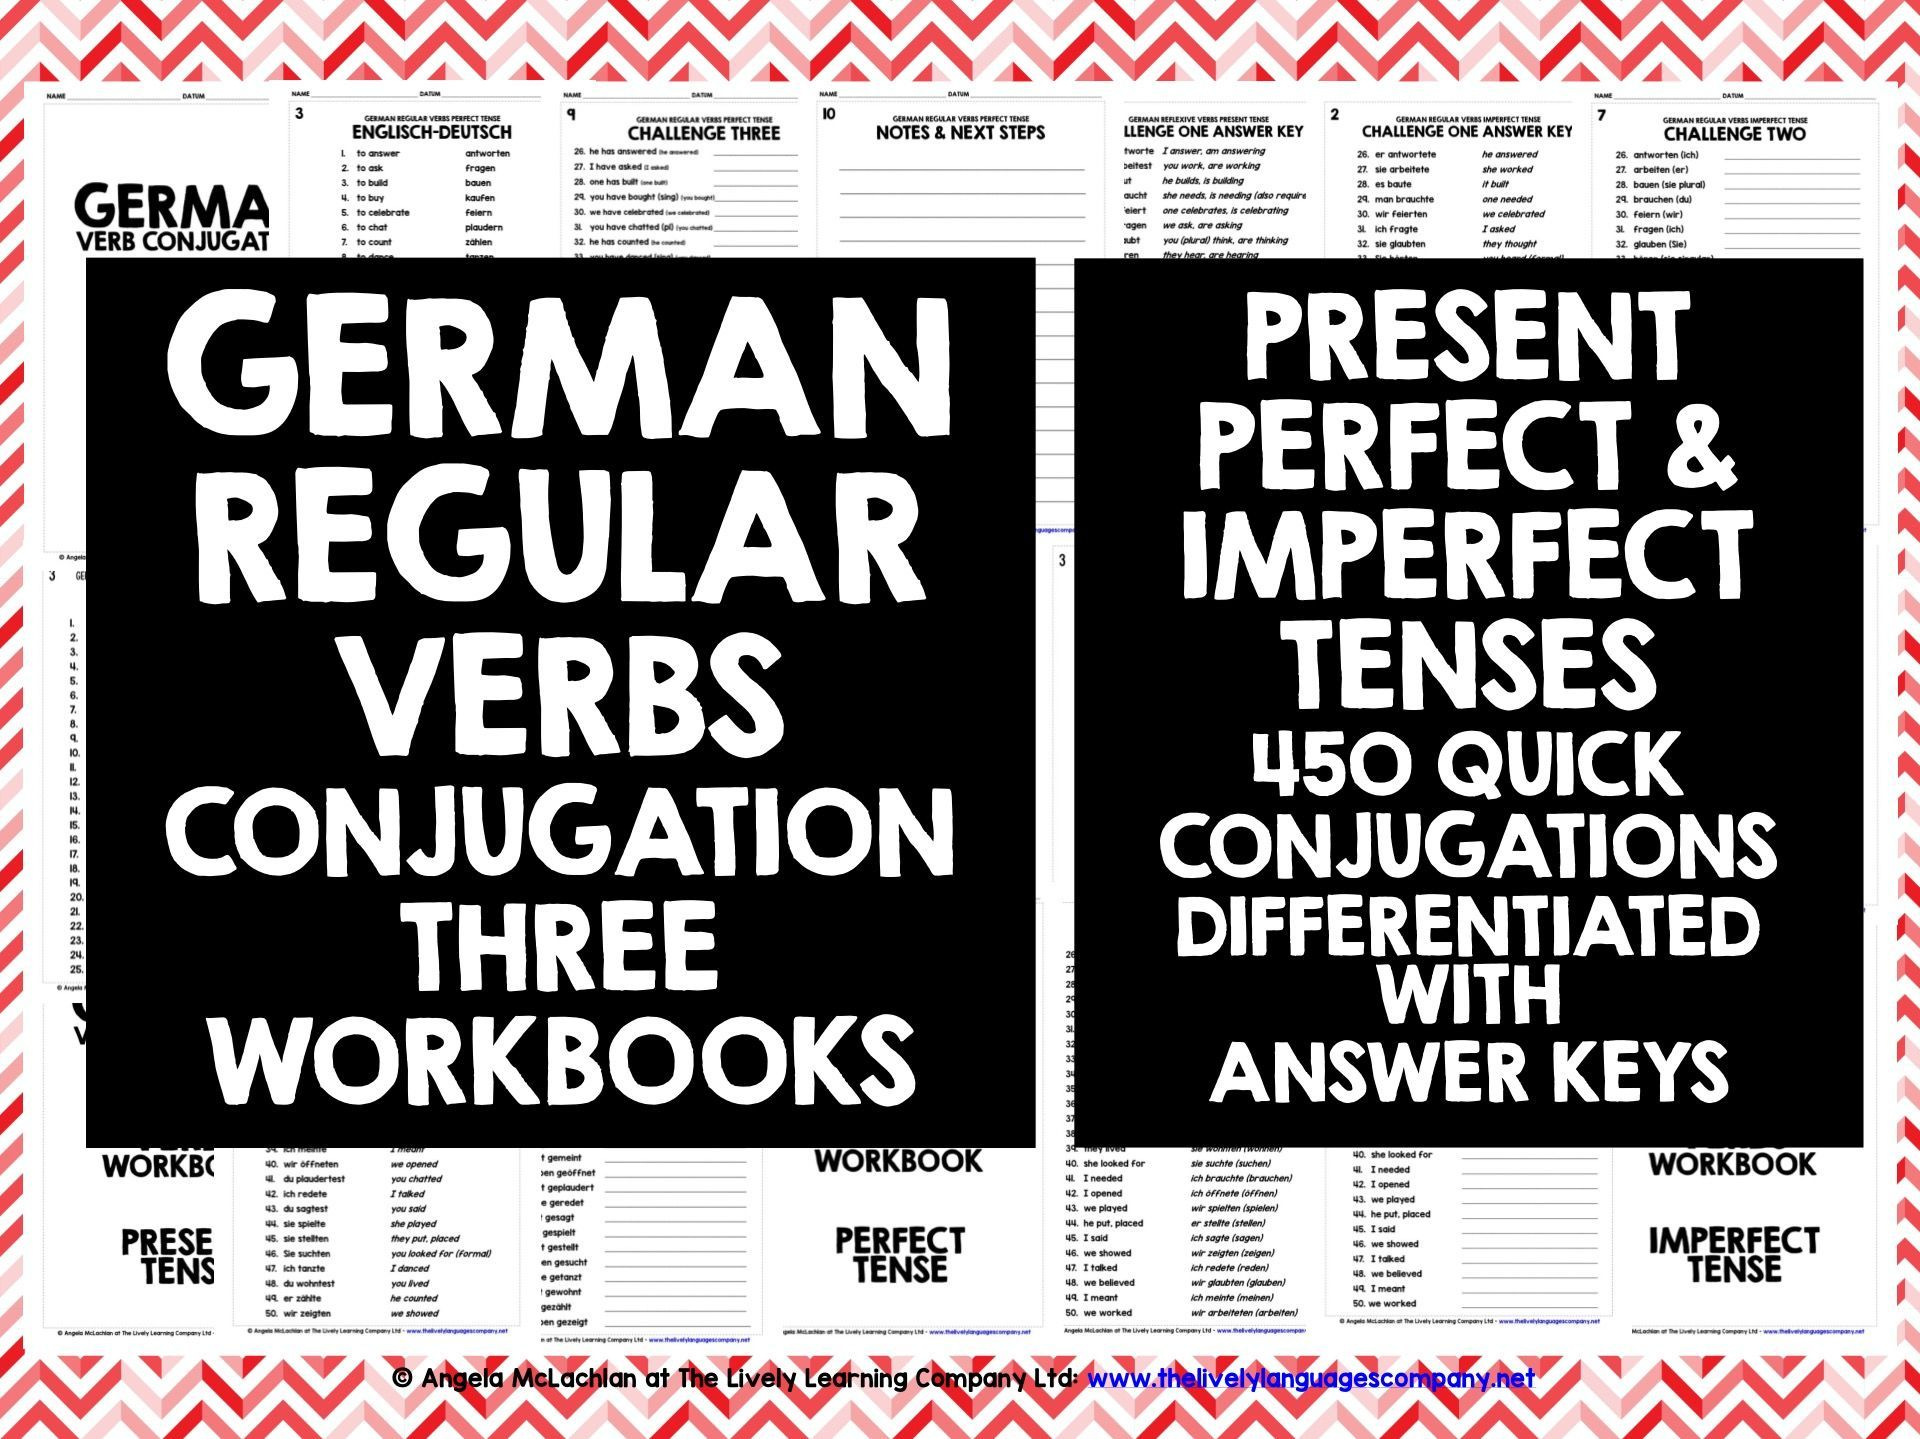 Test Your Knowledge of the German Present Tense with This Quiz